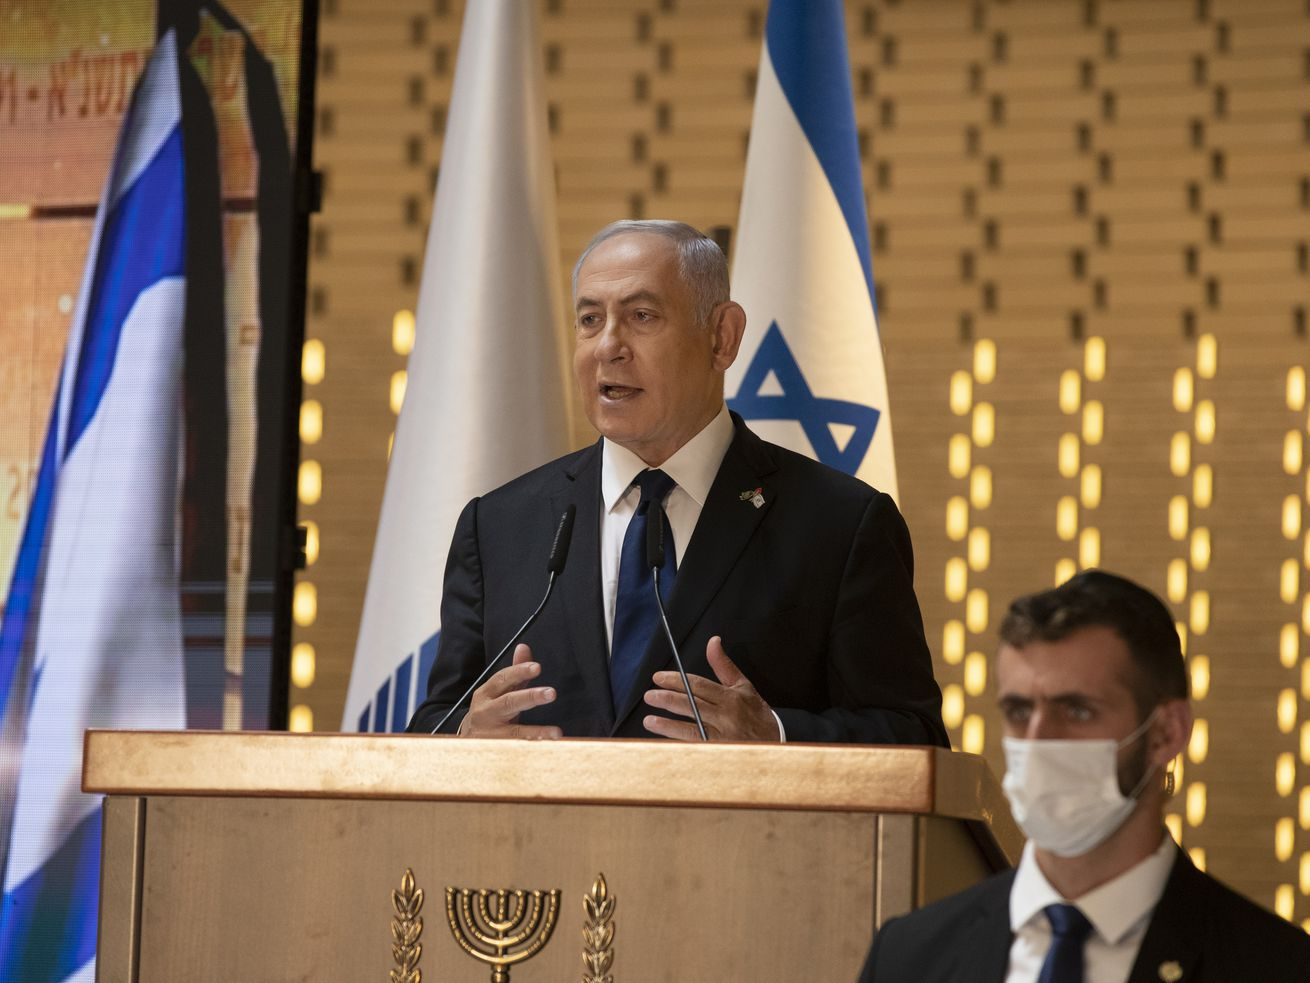 In this Wednesday, April 14, 2021 file photo, Israeli Prime Minister Benjamin Netanyahu speaks at a Memorial Day ceremony at the military cemetery at Mount Herzl, Jerusalem.